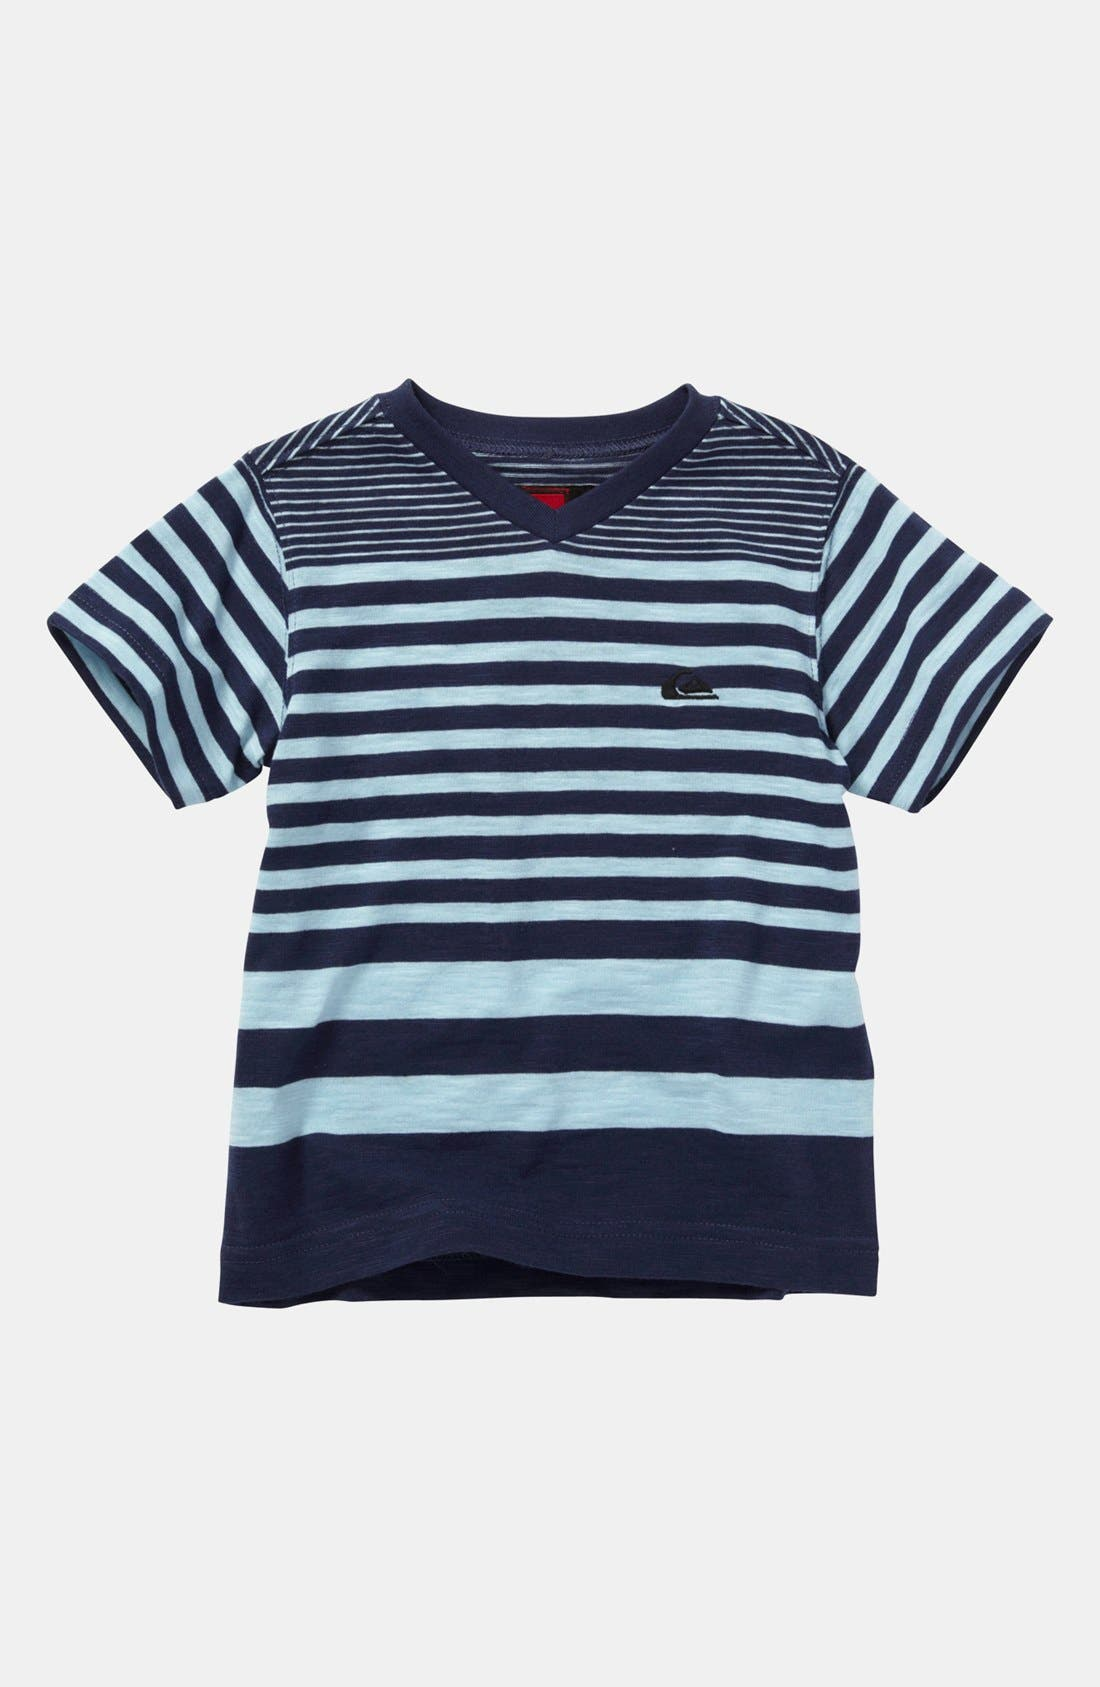 Alternate Image 1 Selected - Quiksilver 'Car Path' T-Shirt (Baby)